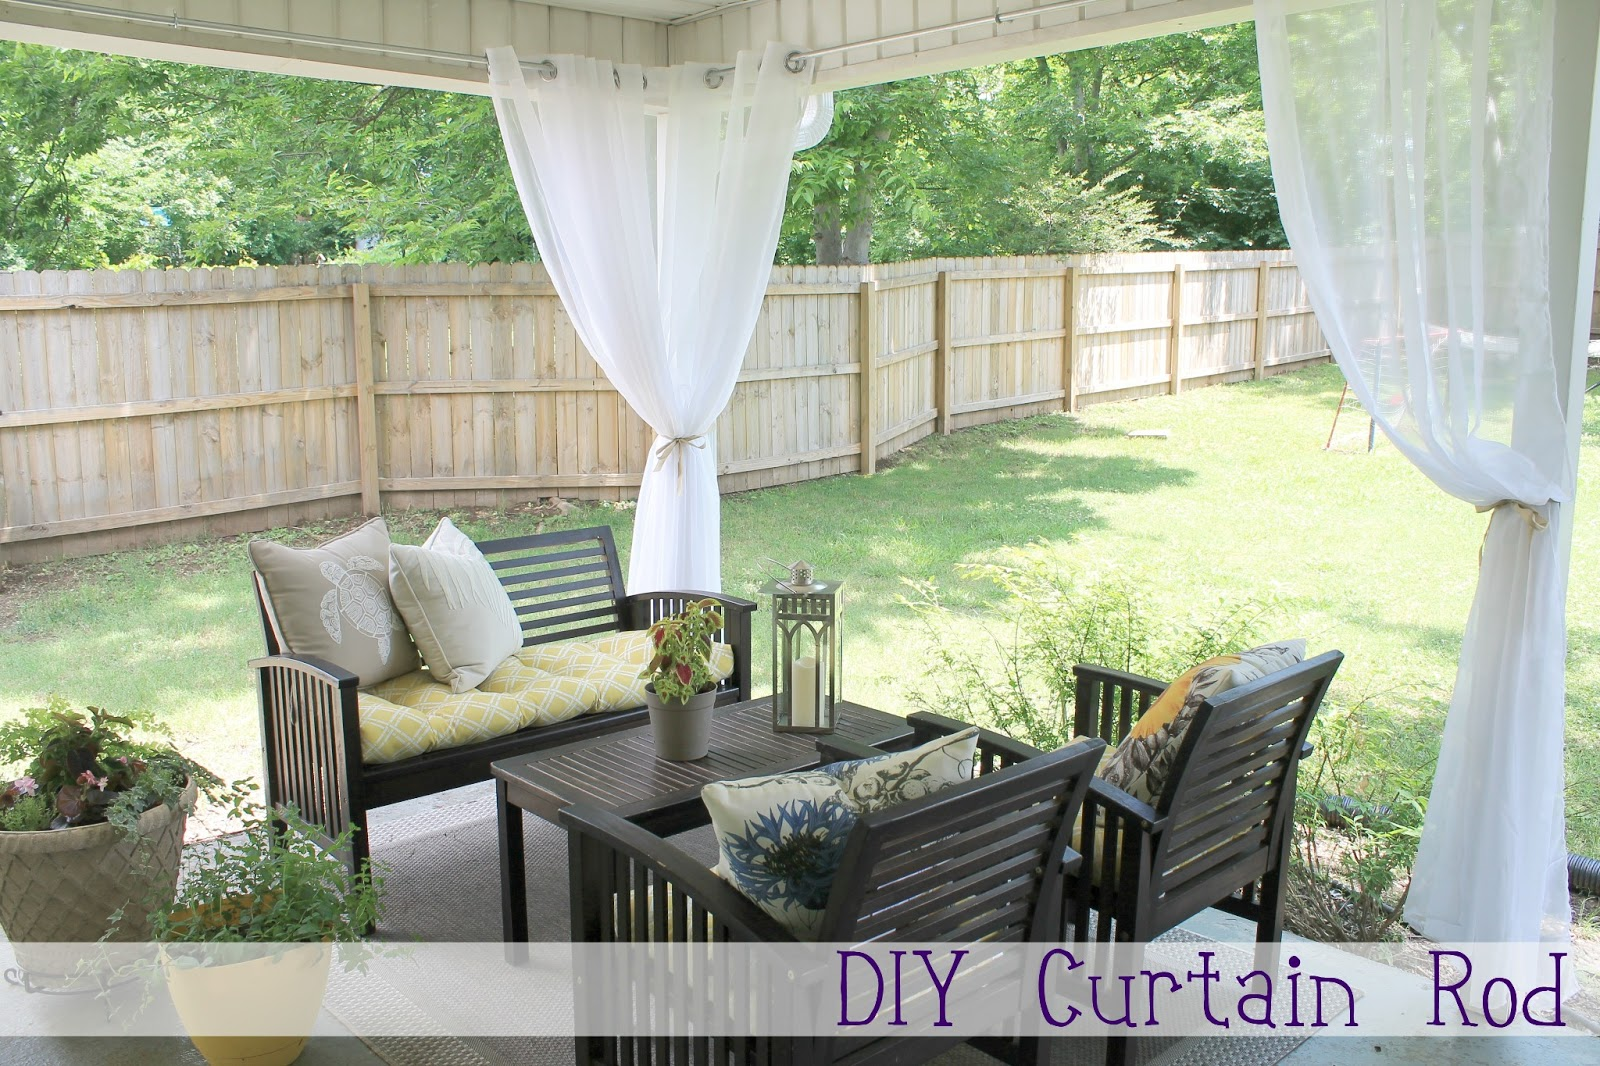 Diy Curtain Rod Chippasunshine